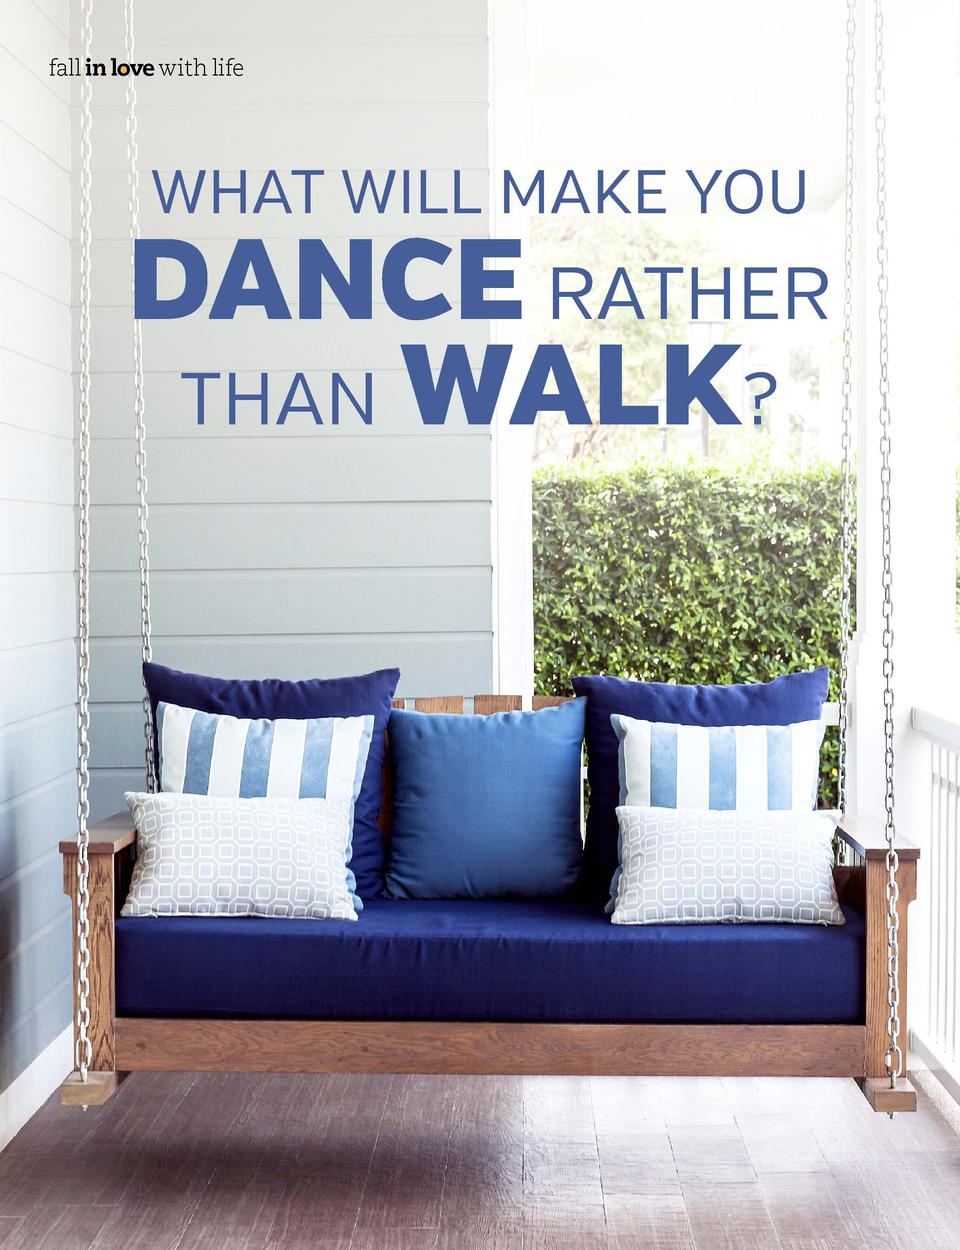 fall in love with life  WHAT WILL MAKE YOU  DANCE RATHER THAN WALK   fall in love with life  The radical act is living a l...